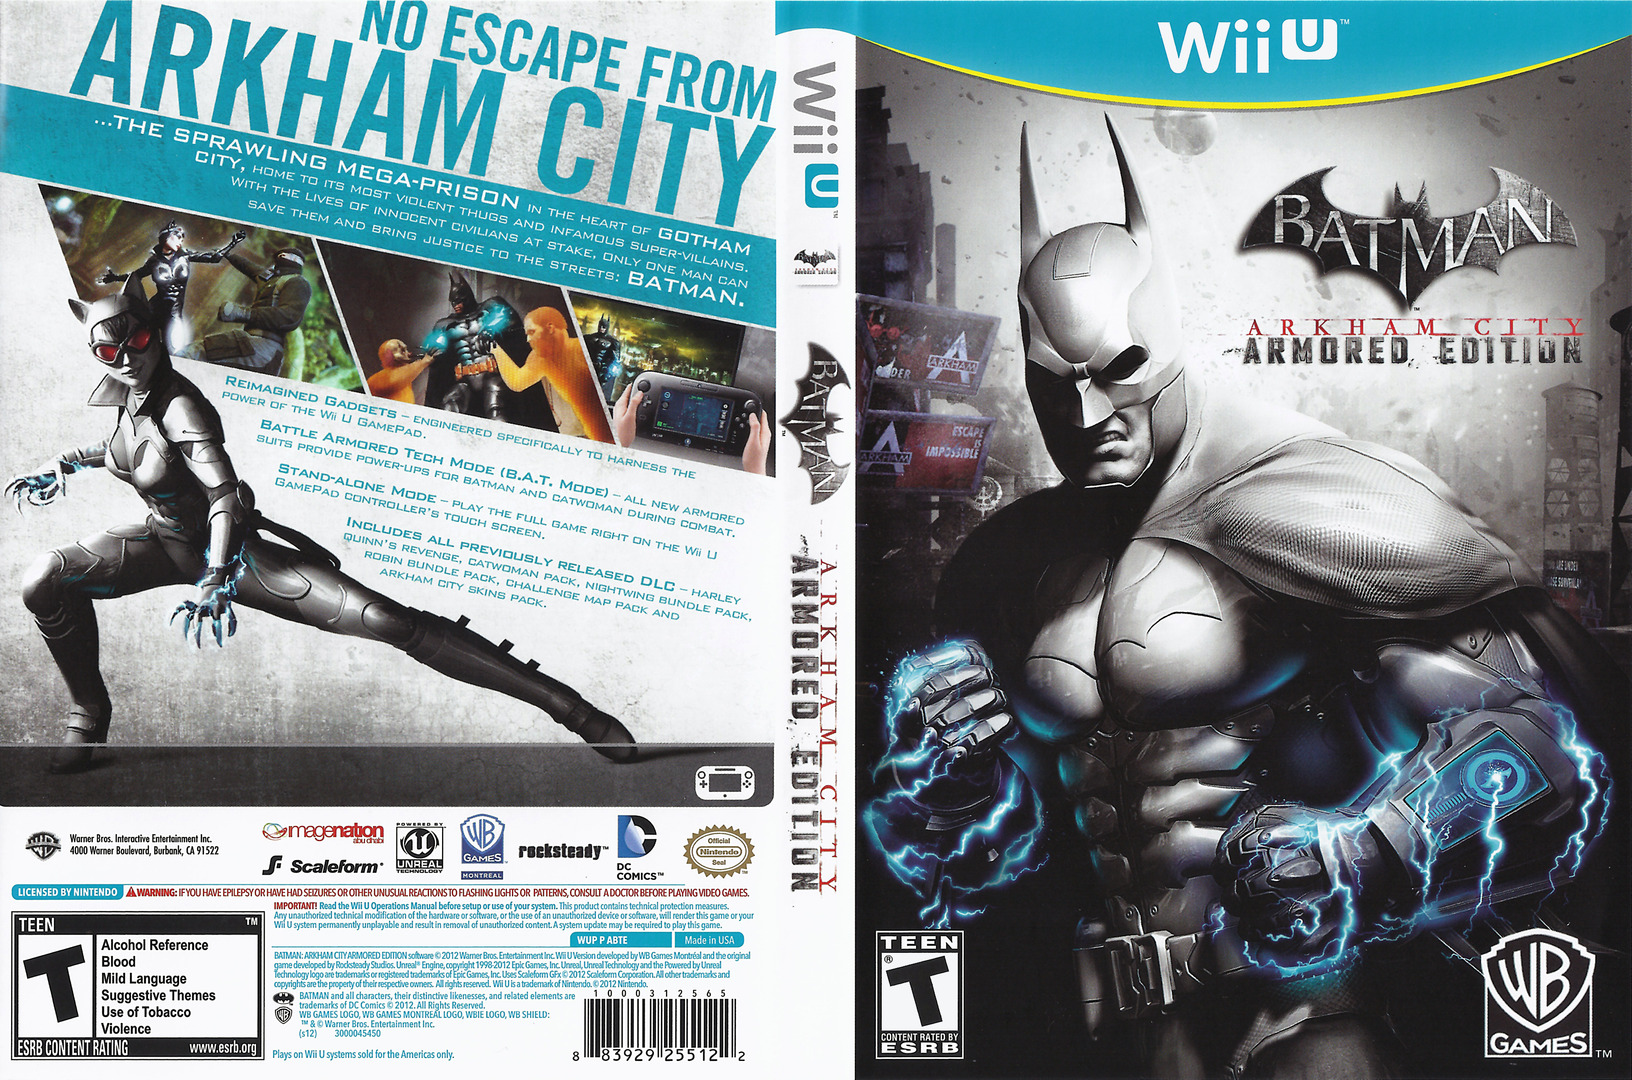 Batman Arkham City: Armored Edition WiiU coverfullHQ (ABTEWR)